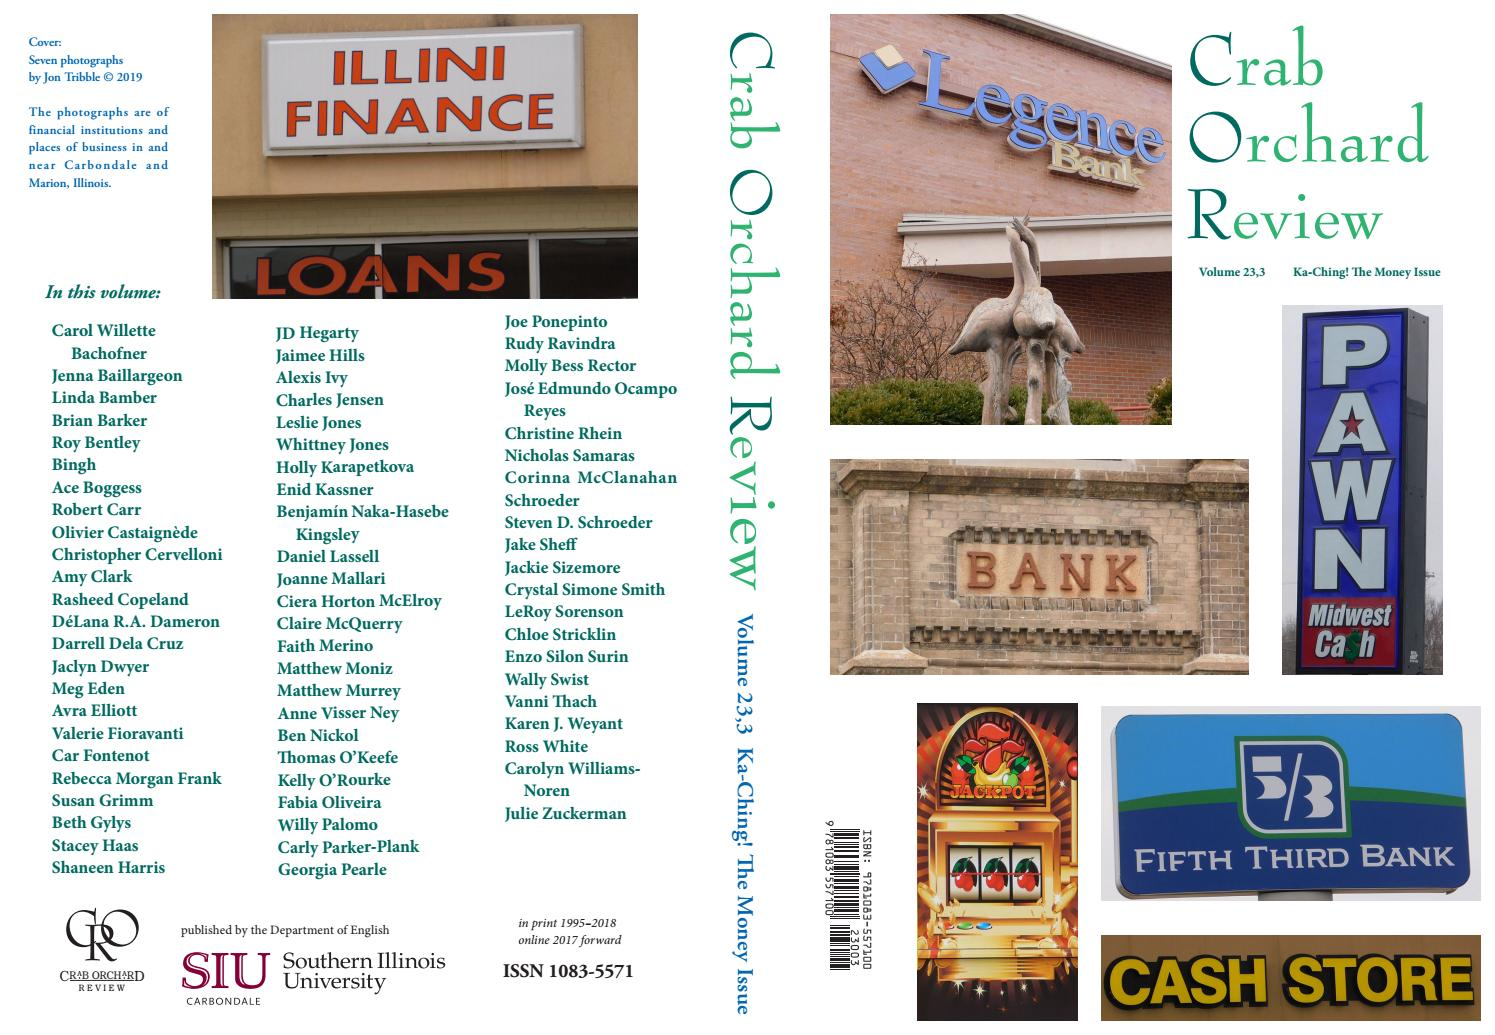 87bd974f Crab Orchard Review Vol 23 No 3 March 2019 by Crab Orchard Review - issuu